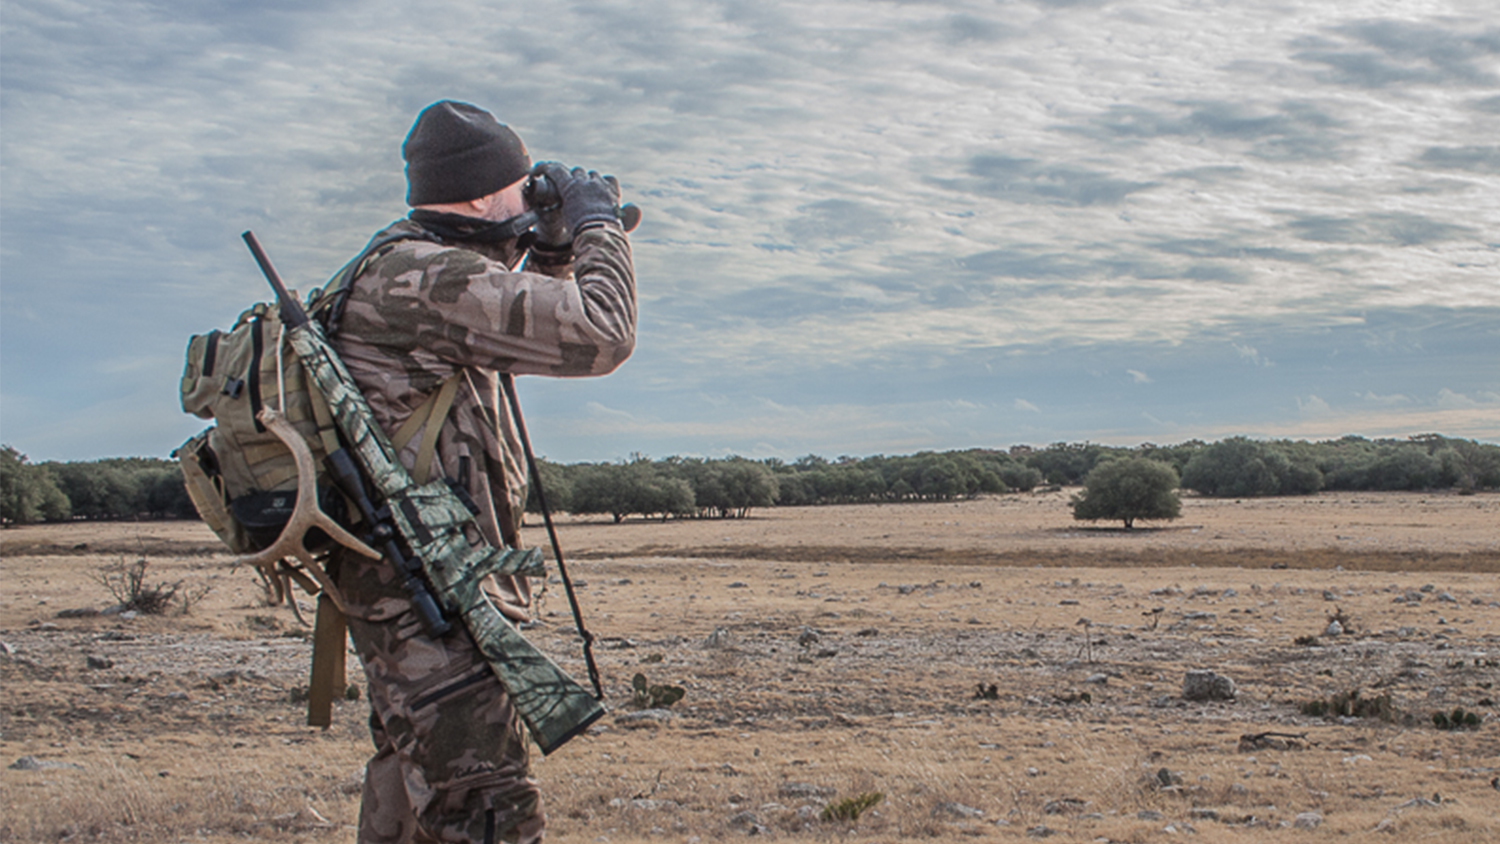 ARs for Deer Hunting: The Modern Answer to an Age Old Tradition